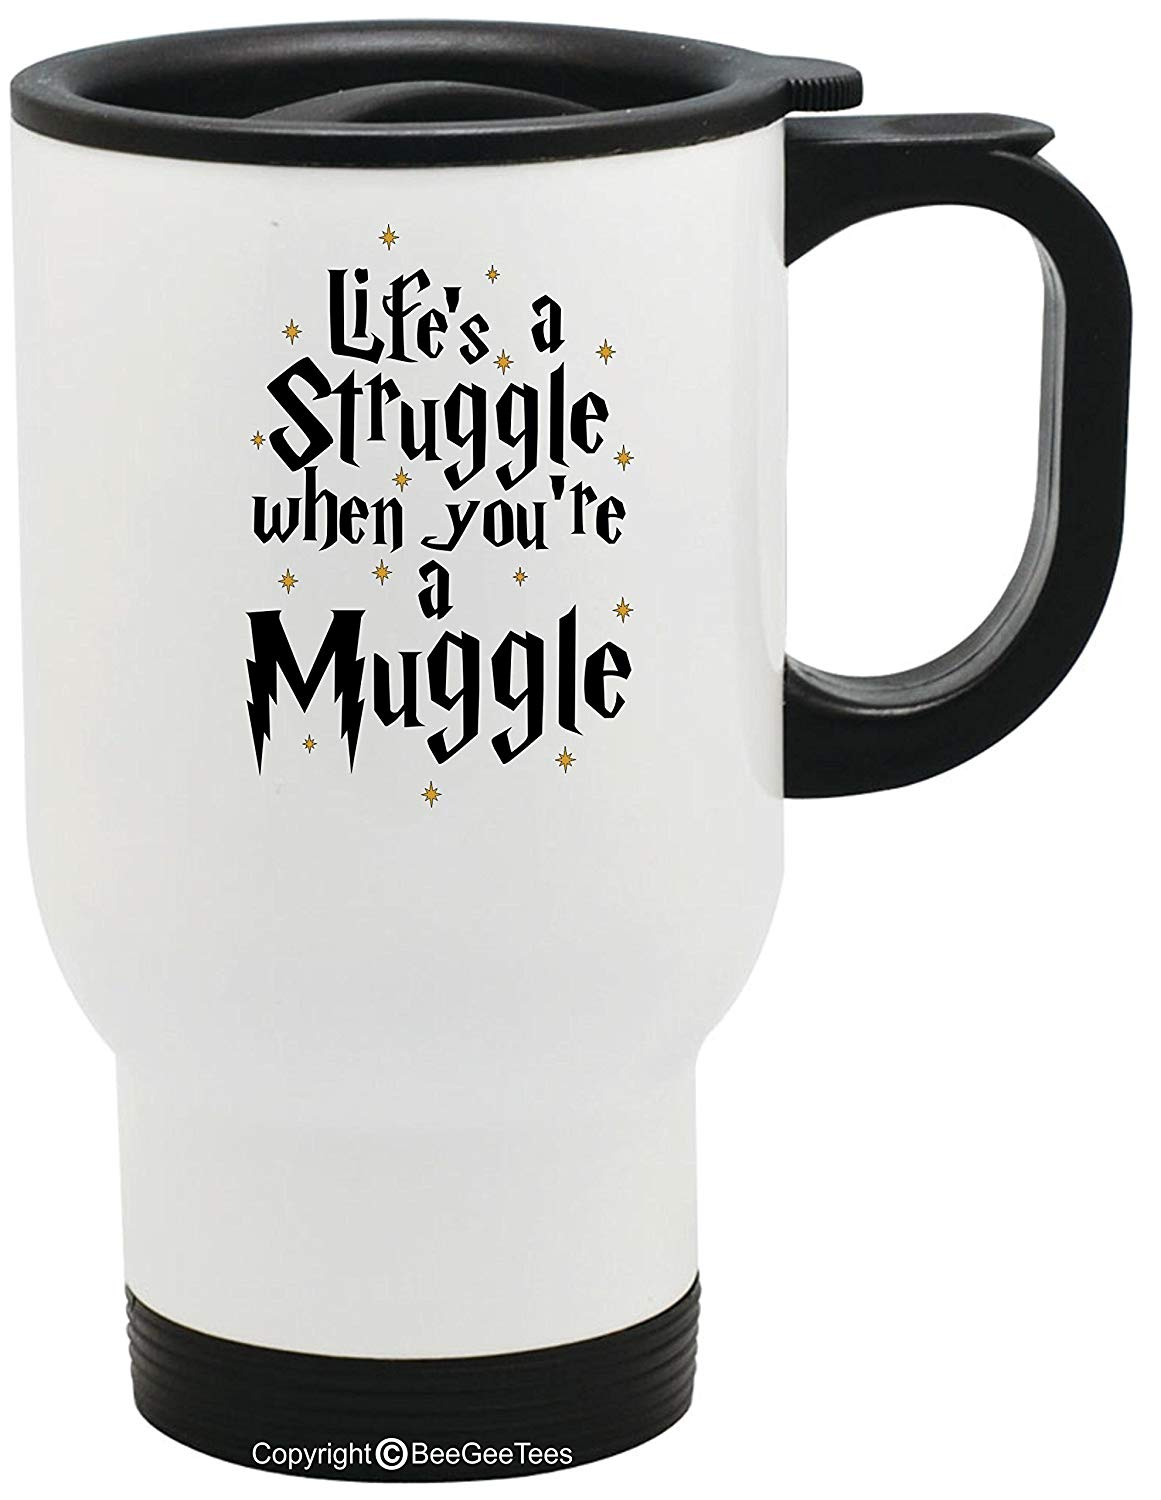 Life's A Struggle When You're A Muggle Funny Harry Potter Inspired Wizard Stainless Steel Hogwarts Travel Mug by BeeGeeTees (14 oz)